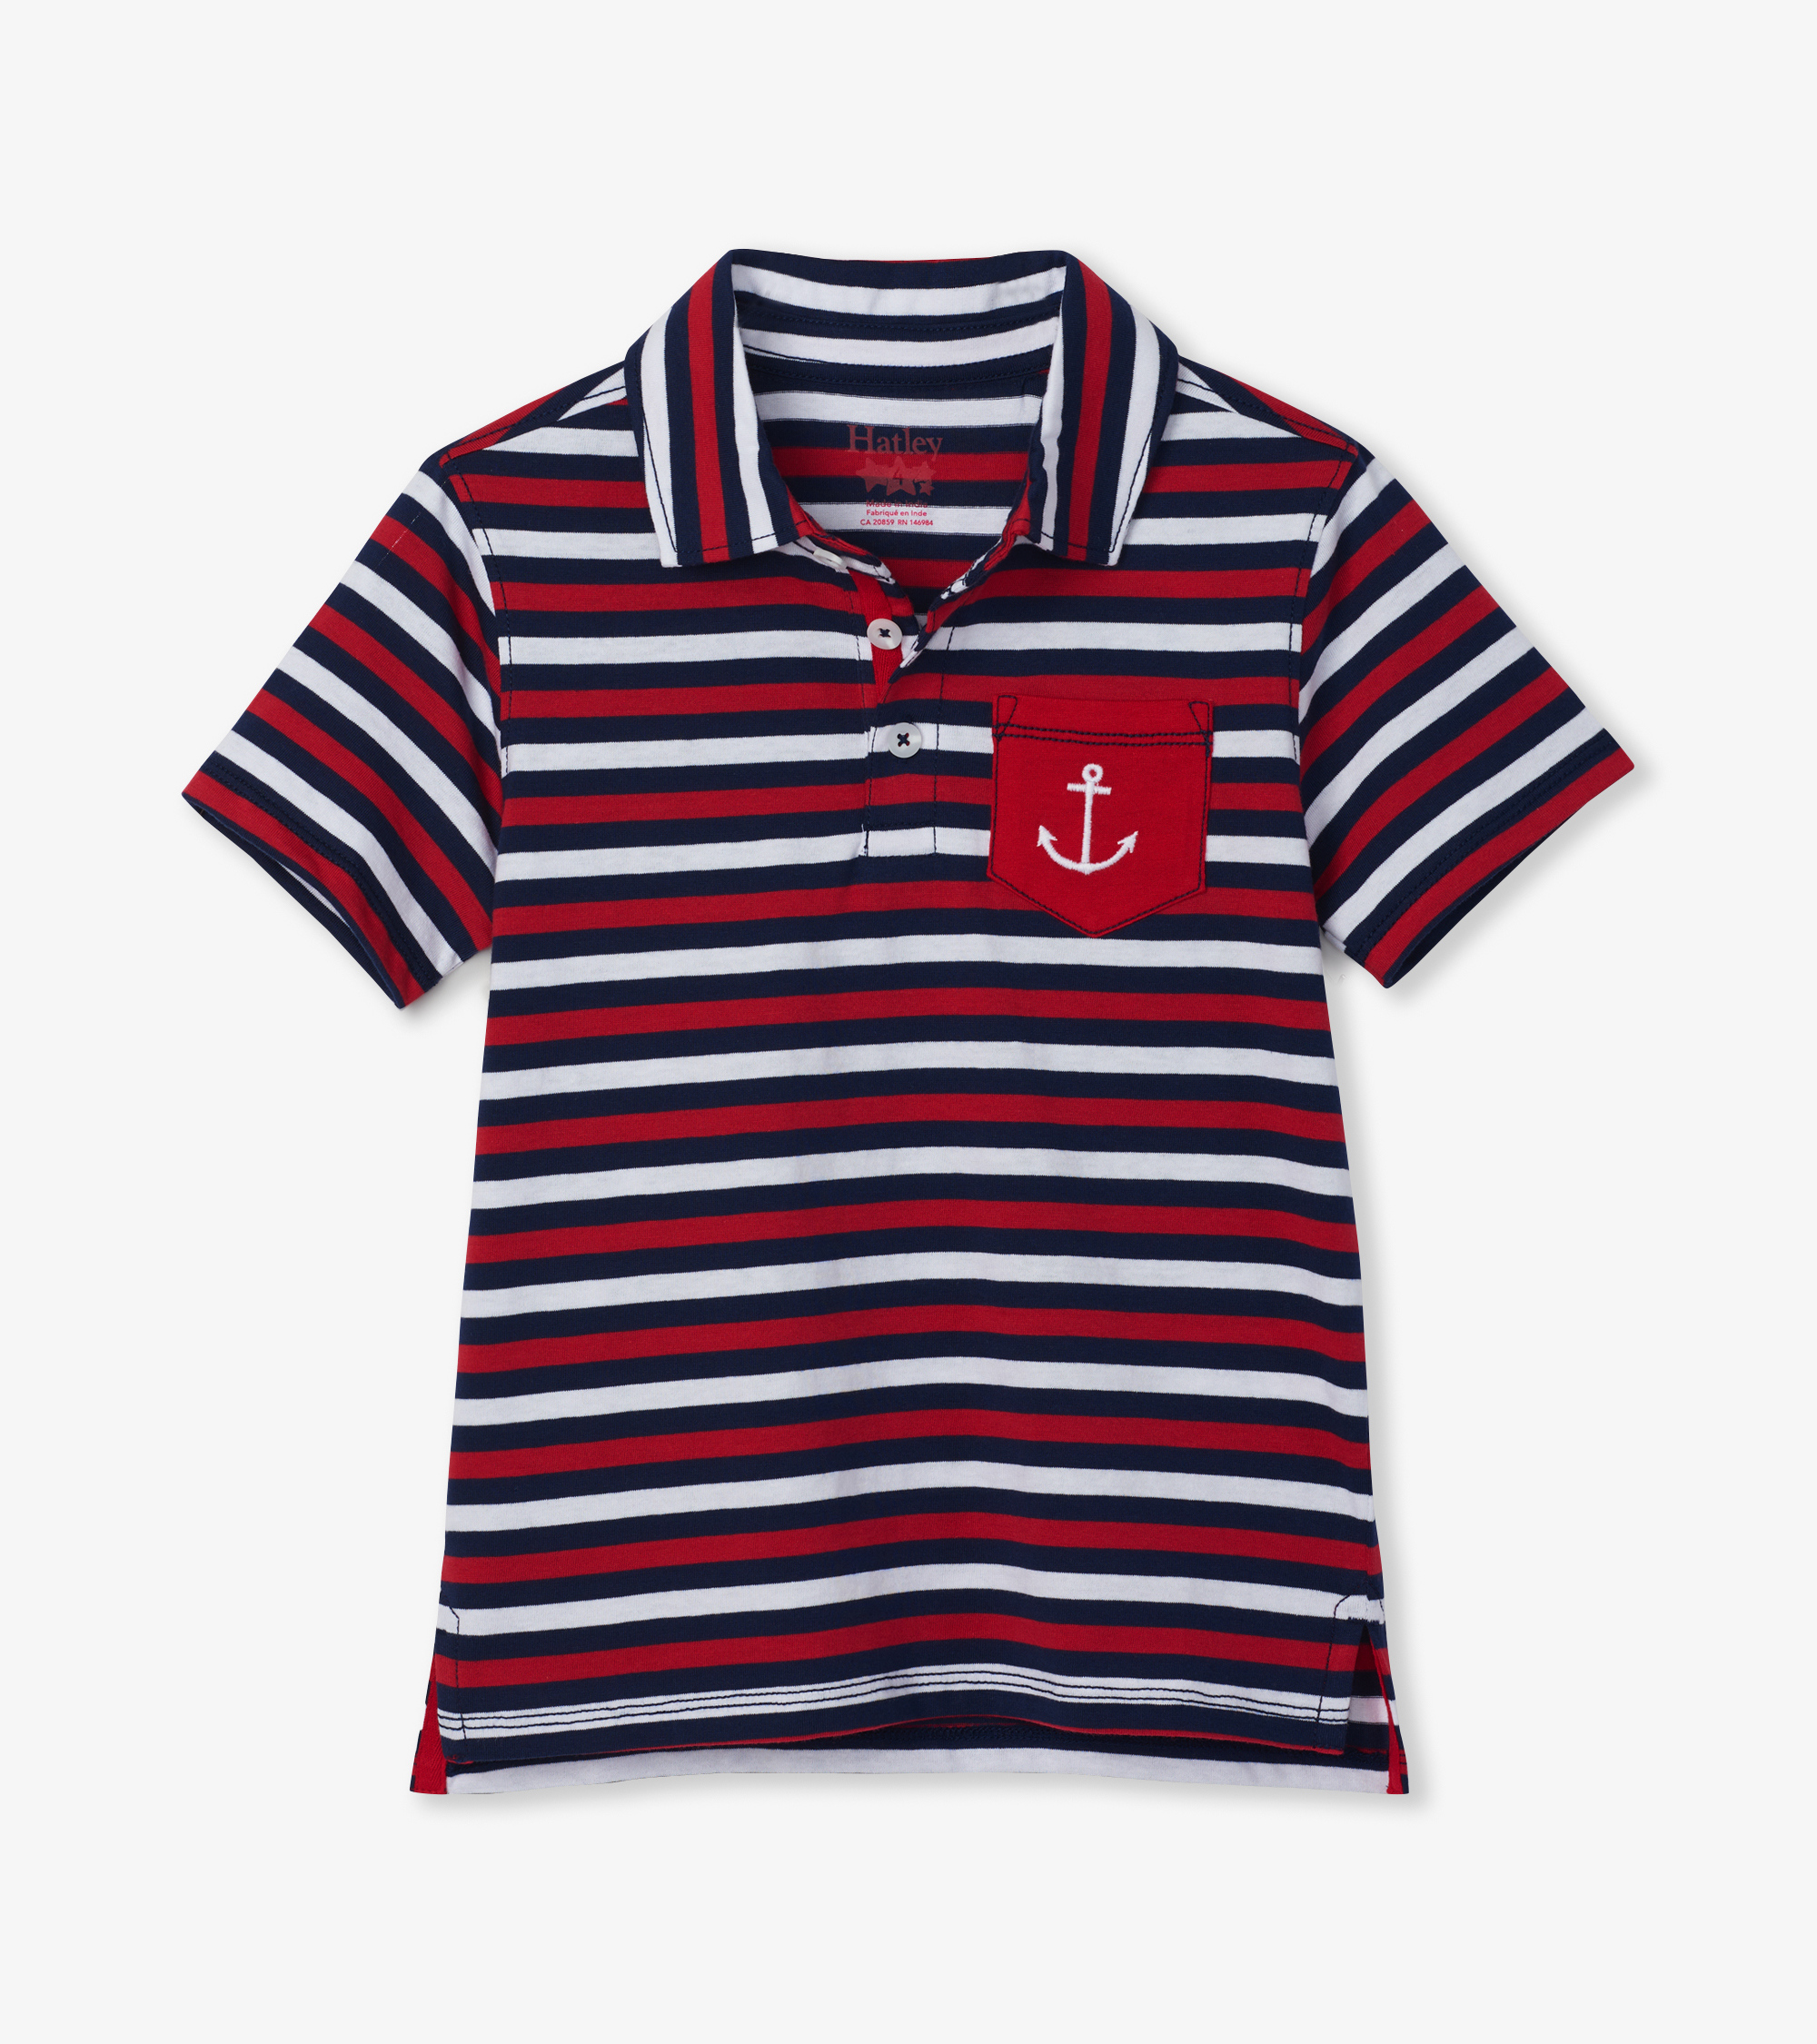 NOW £13 Hatley Nautical Stripe Polo Tee (was £19)